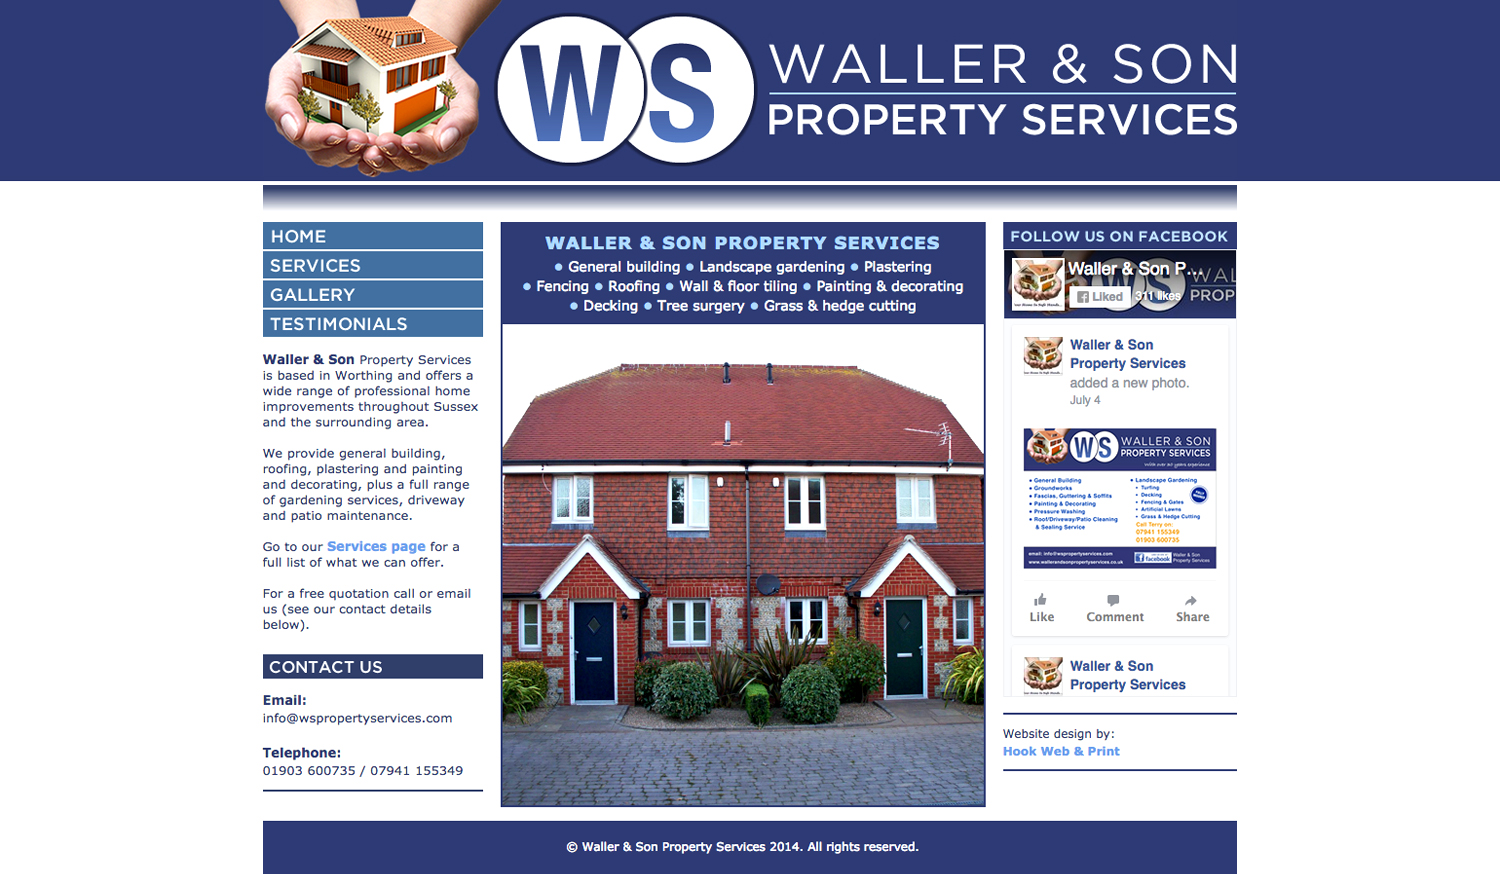 Waller & Son website - designed by Hook Web & Print